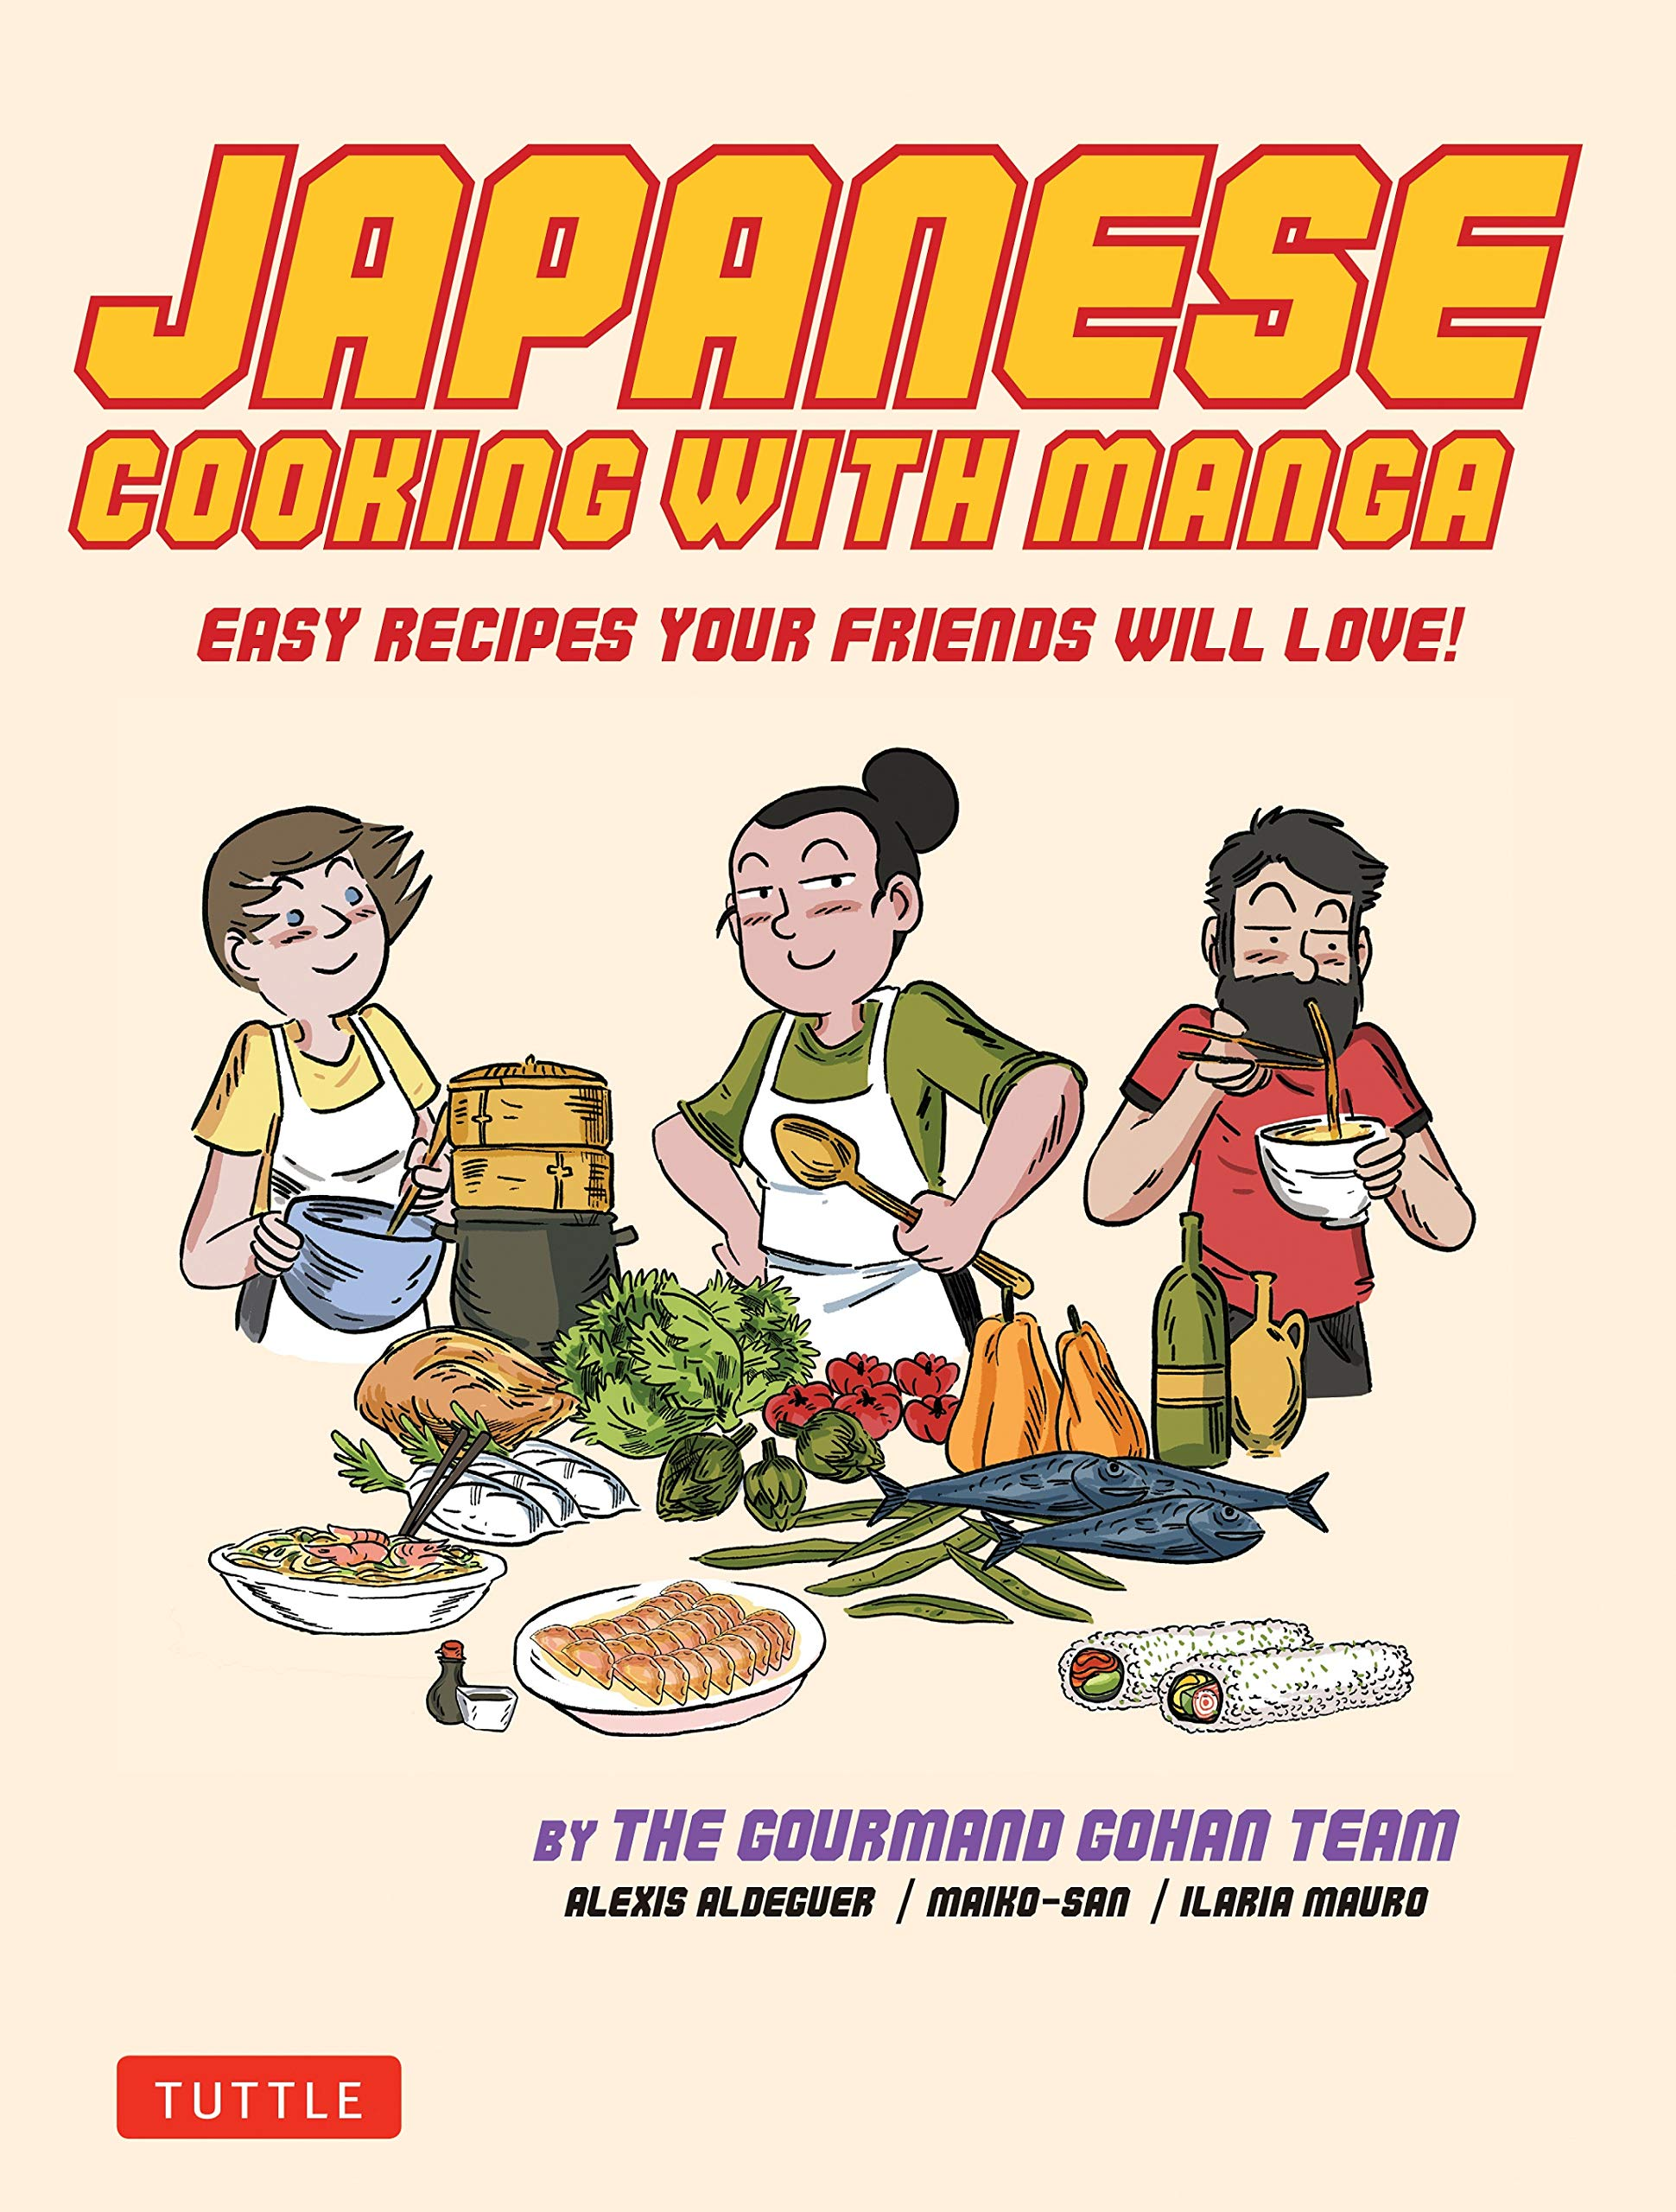 Japanese Cooking With Manga 59 Easy Recipes Your Friends Will Love Aldeguer Alexis San Maiko Mauro Ilaria 9784805314333 Amazon Com Books